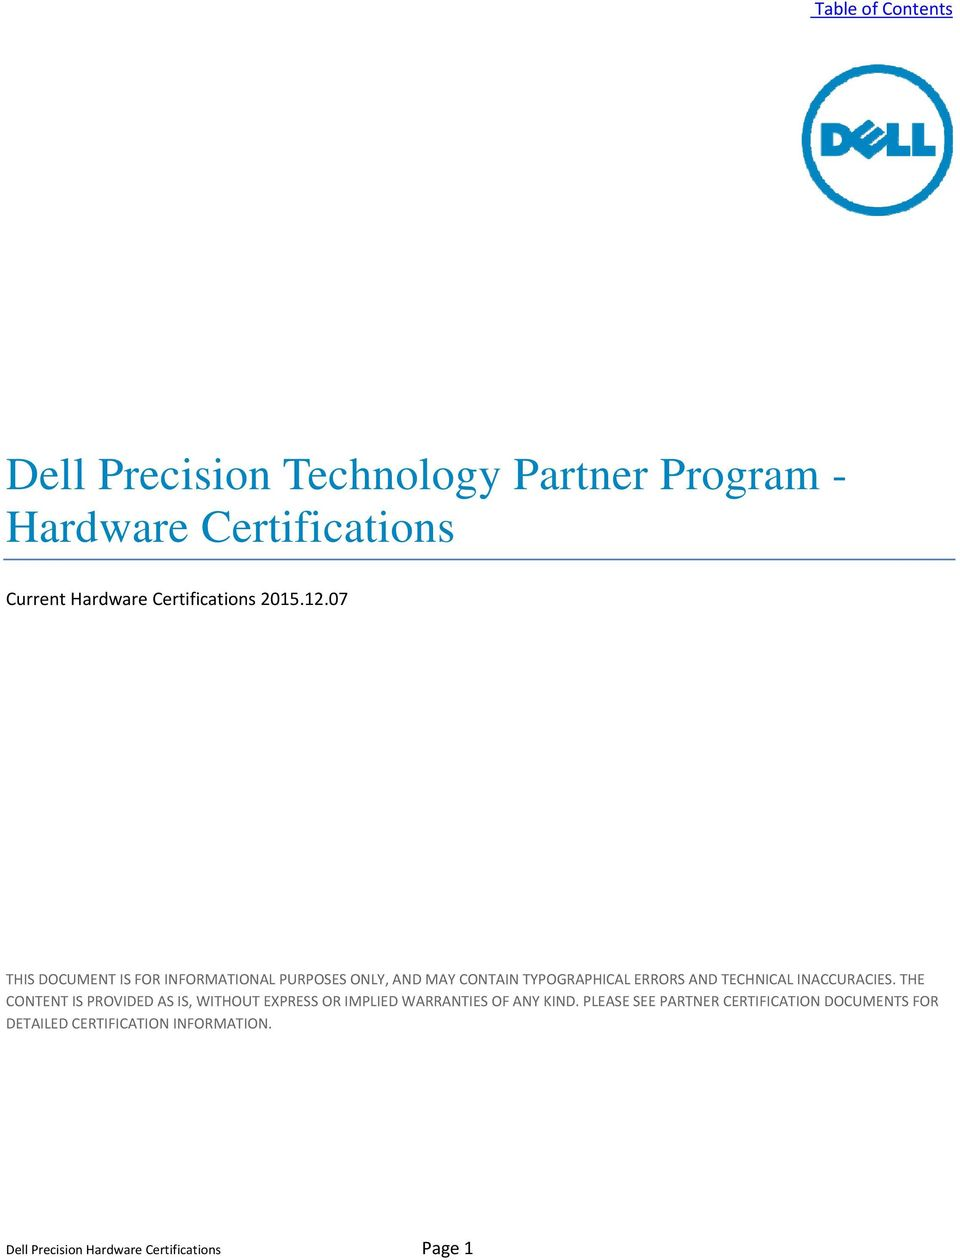 Dell Precision Technology Partner Program Hardware Certifications